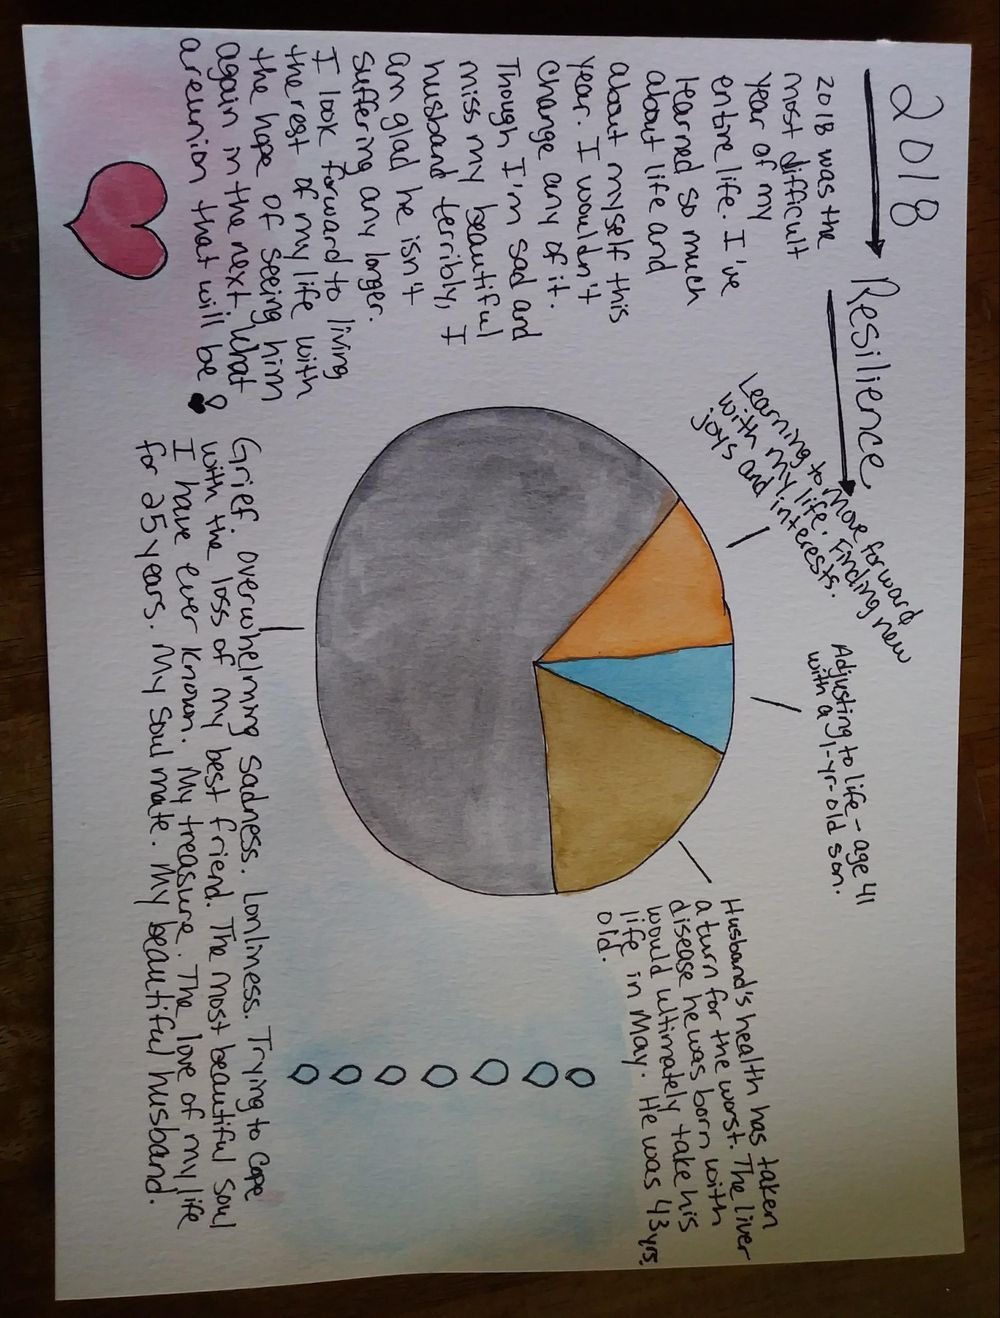 2018 Resilience Pie Chart - image 1 - student project